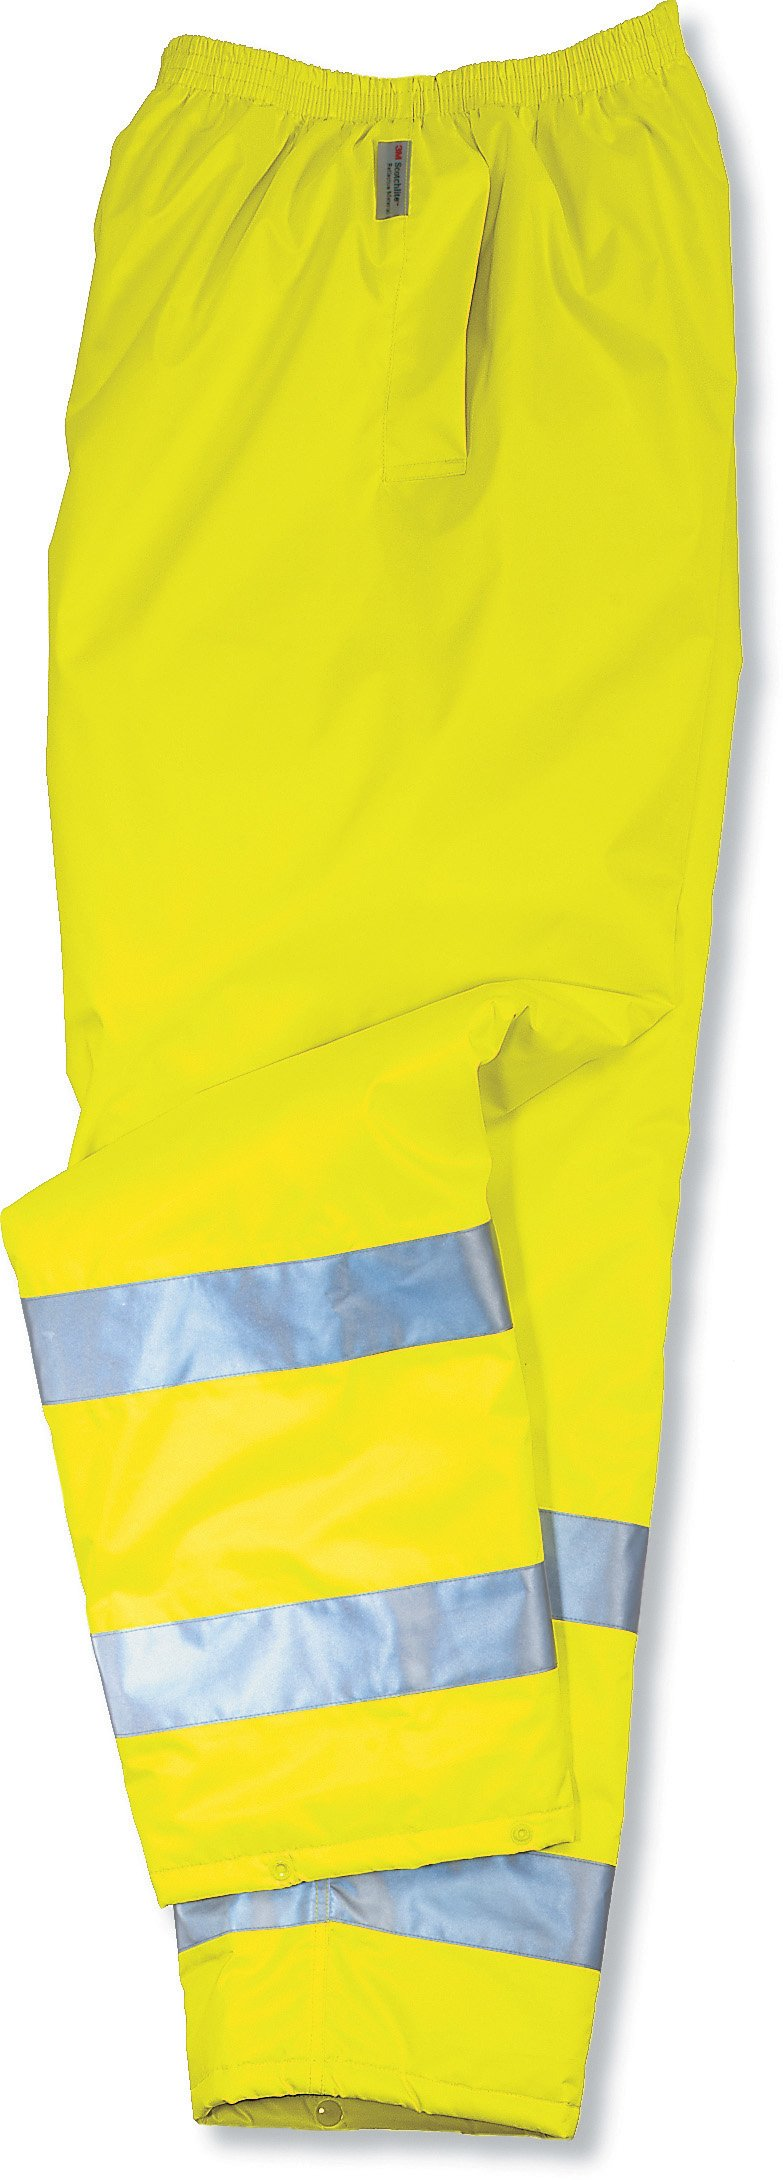 Ergodyne GloWear 8925 ANSI High Visibility Lime Reflective Thermal Safety Pants, Small